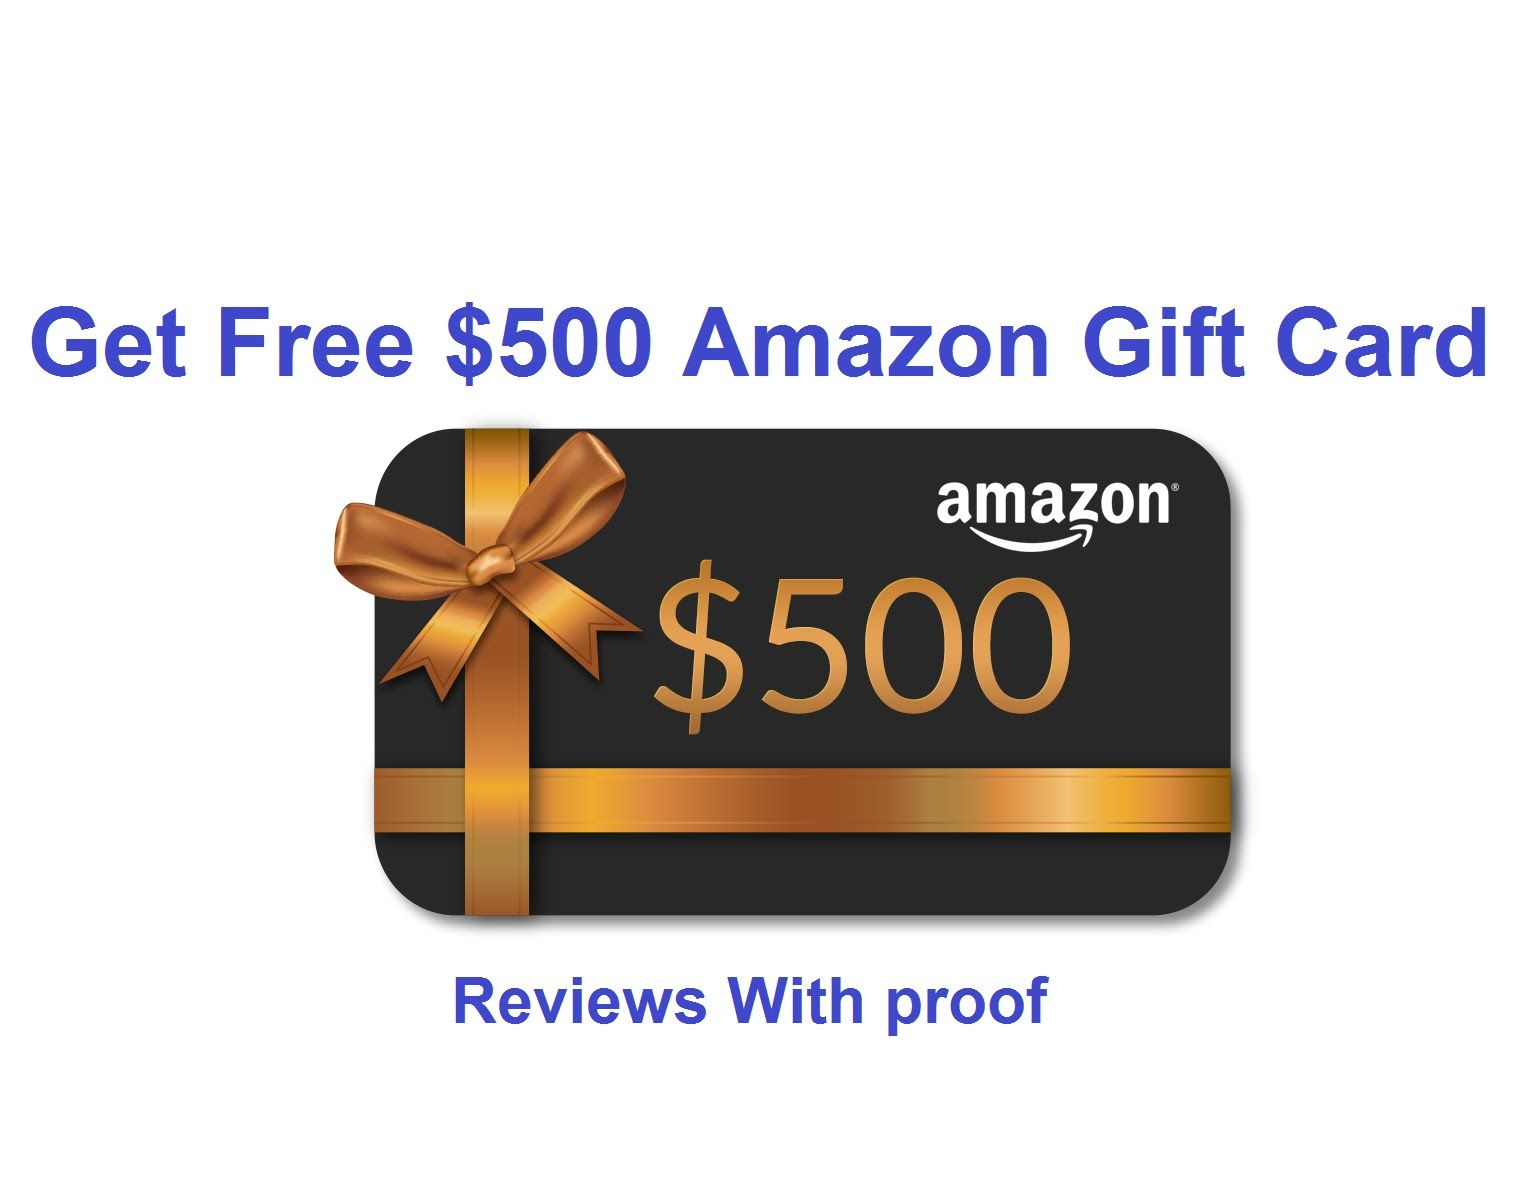 How To Get 500 Amazon Free Gift Card Reviews With Proof Amazon Gift Card Free Best Gift Cards Amazon Gift Cards